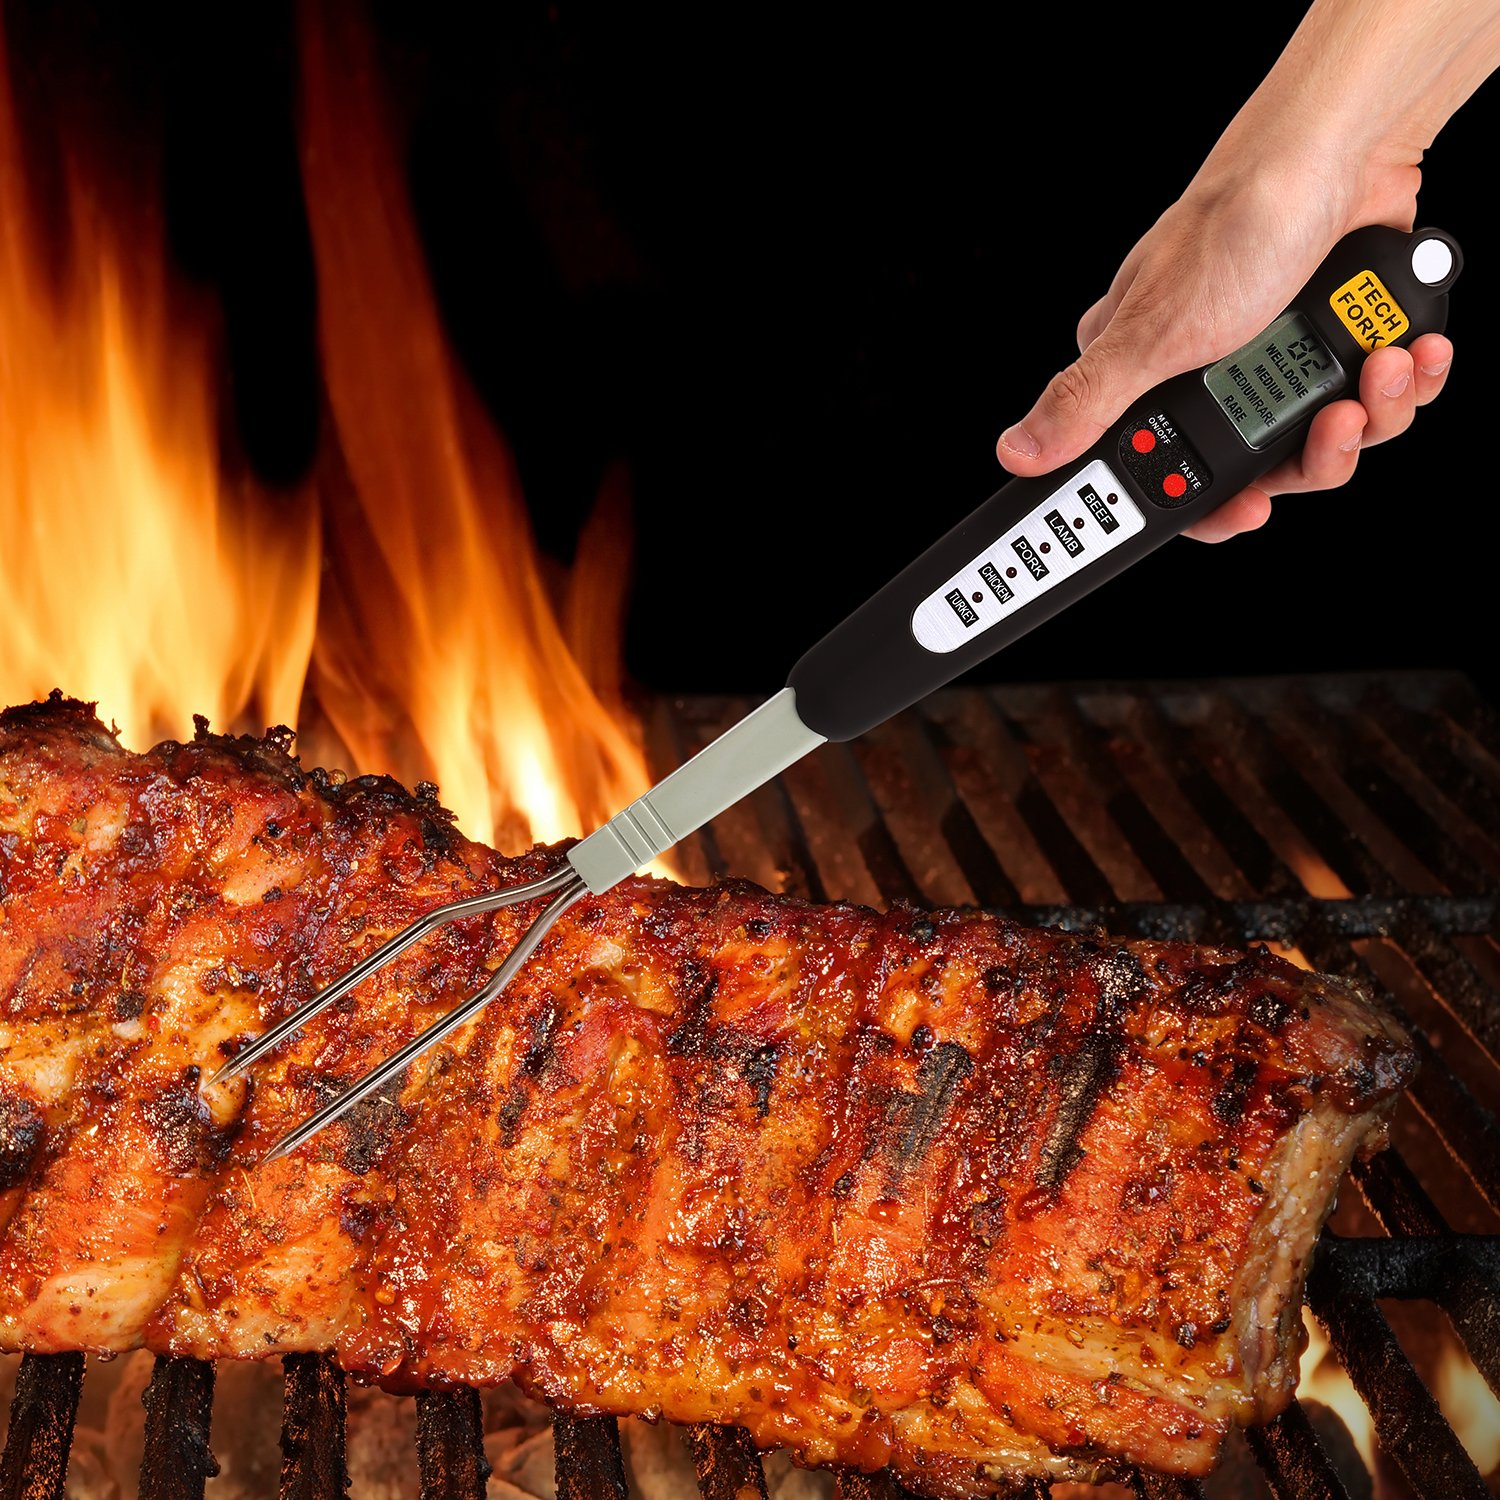 Barbestar Digital Meat Thermometer for Grilling with Long Fork,Instant Read BBQ Cooking Thermometer with LED Screen, Ready Alarm (Black) by Barbestar (Image #5)